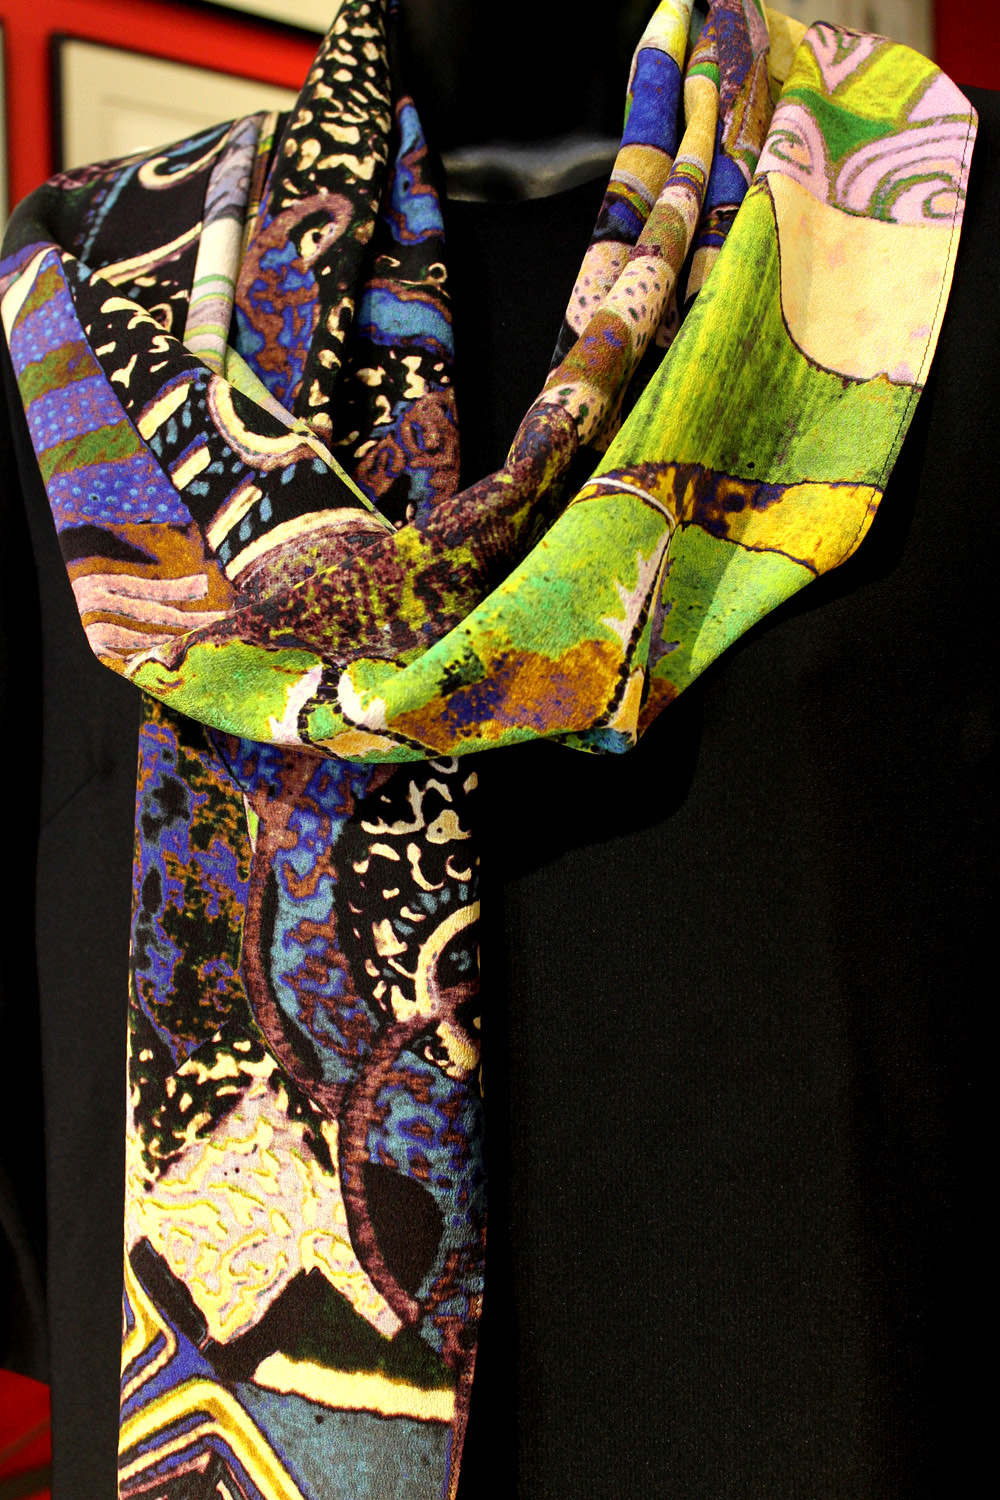 night-circus-carousel-colorful-scarf-from-original-collage-art-by-designer-judi-magier-img_4016-1500px.jpg